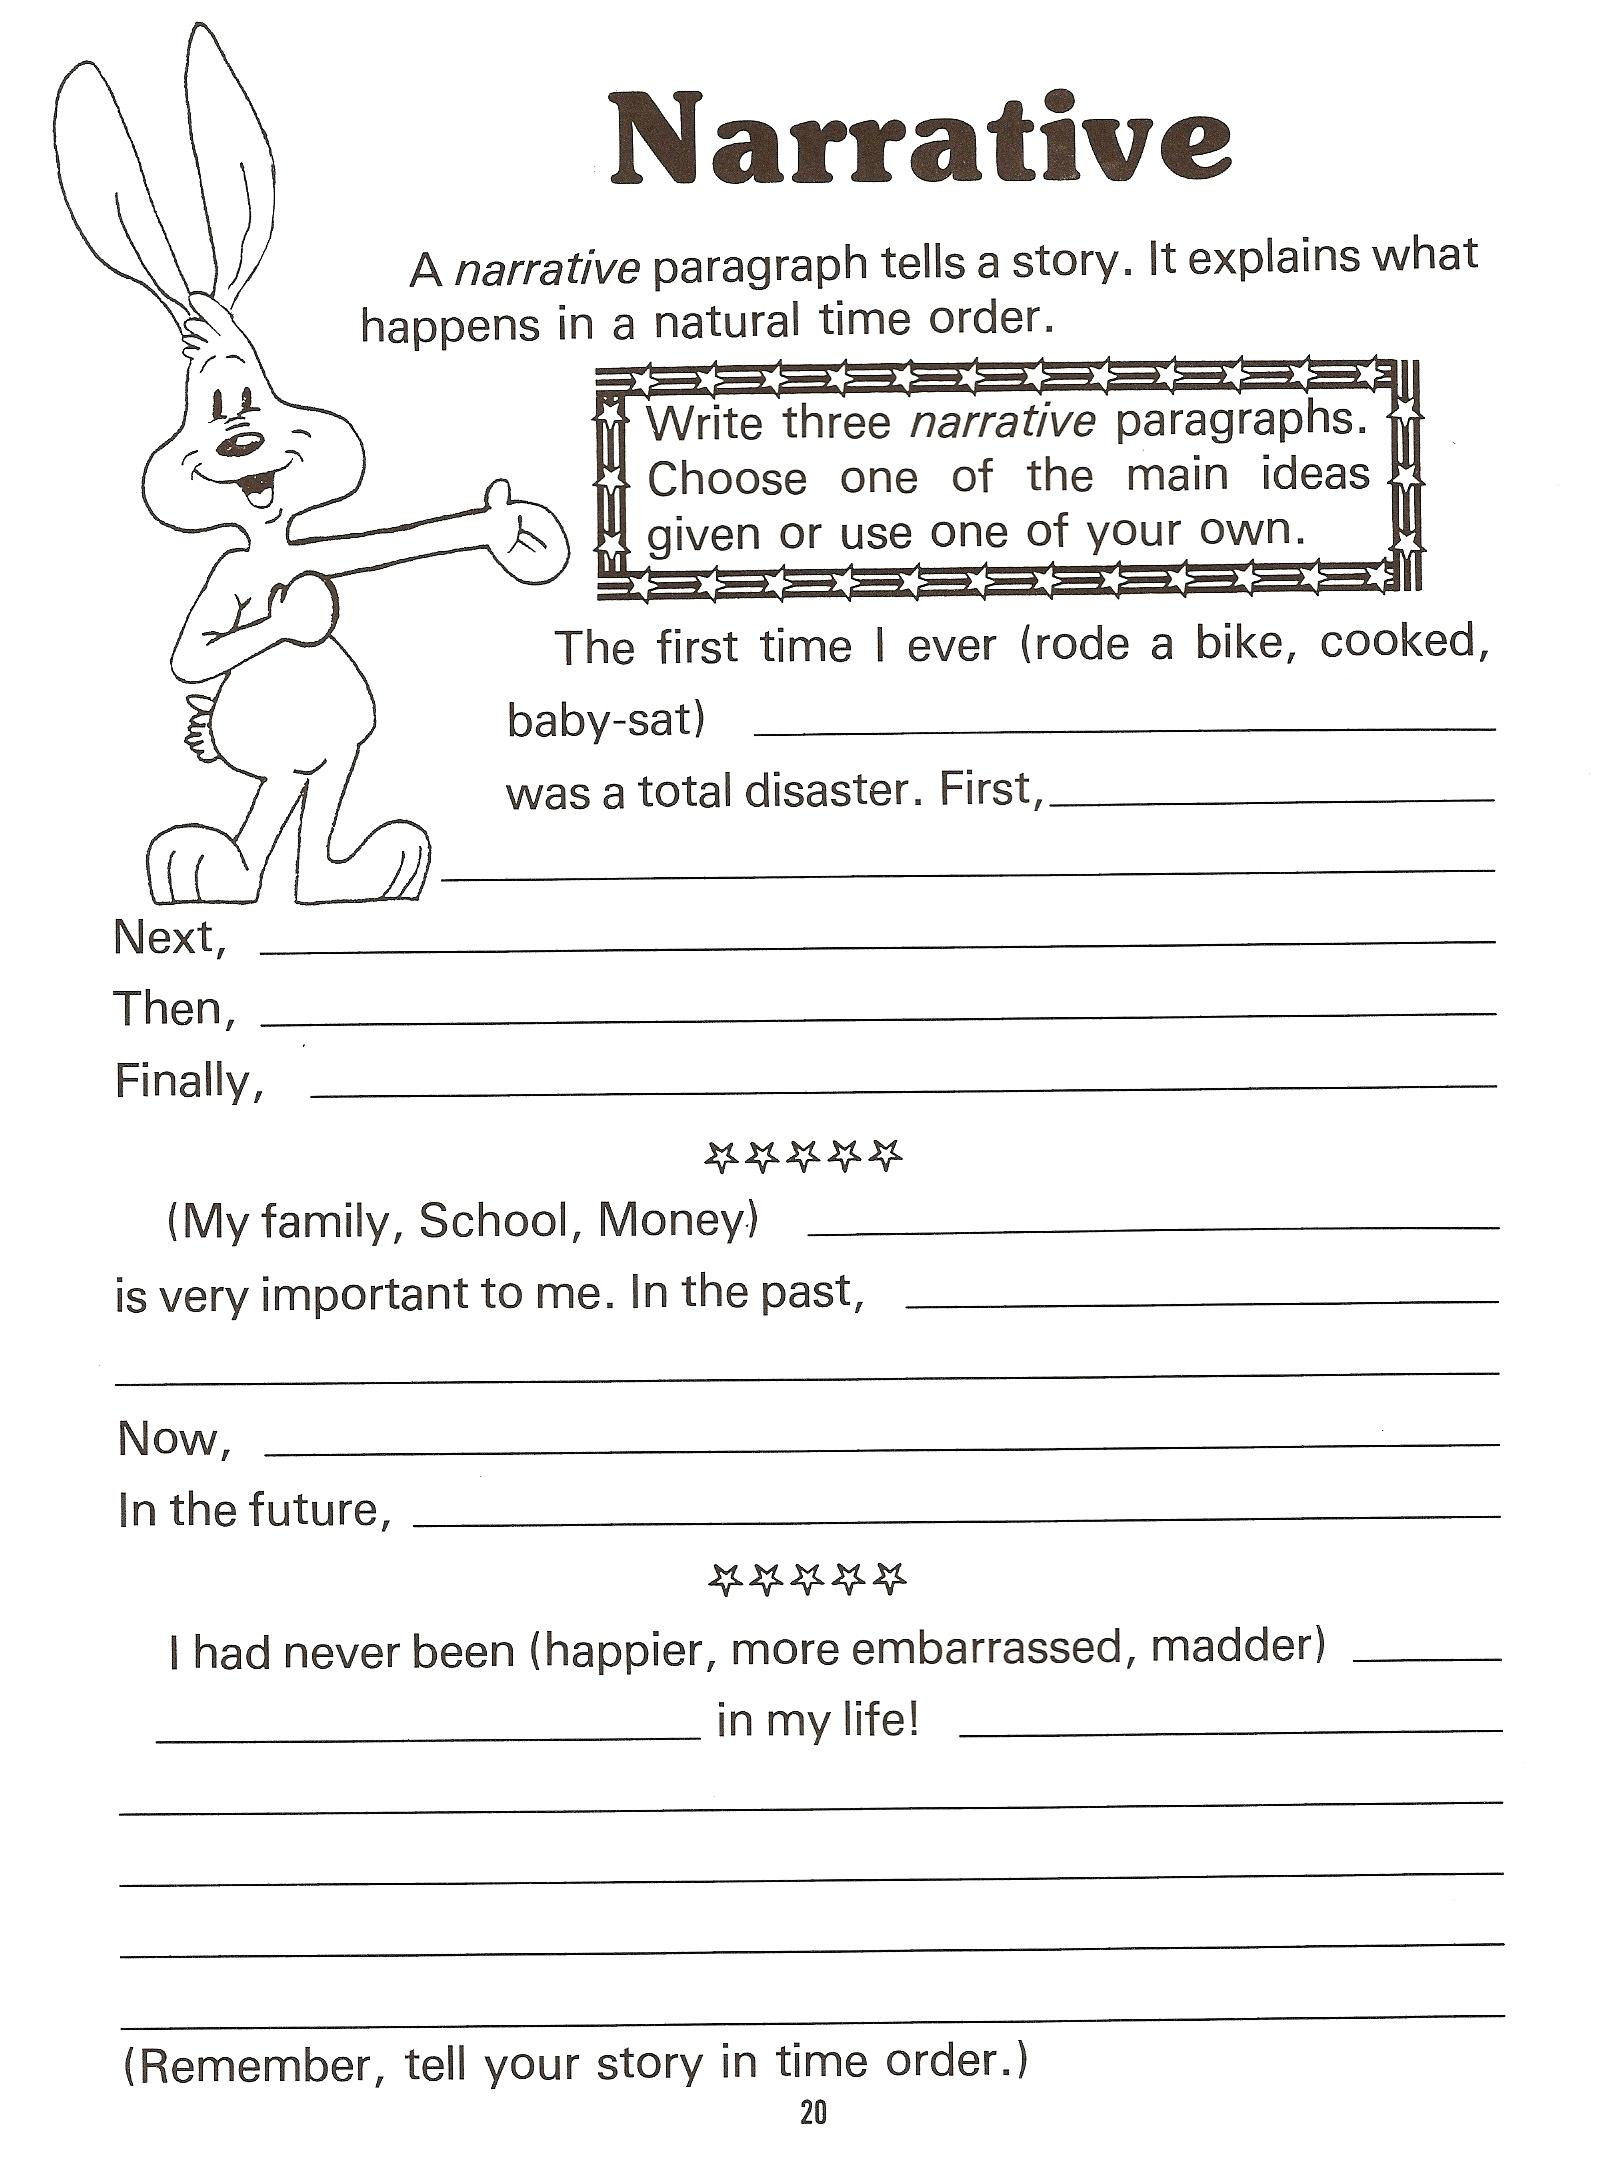 010 Essay Exampletive Topics For College Students Resume Writing Services In Credit Cart Terminal Paper Literacy Unforgettable Narrative Personal Ideas Full